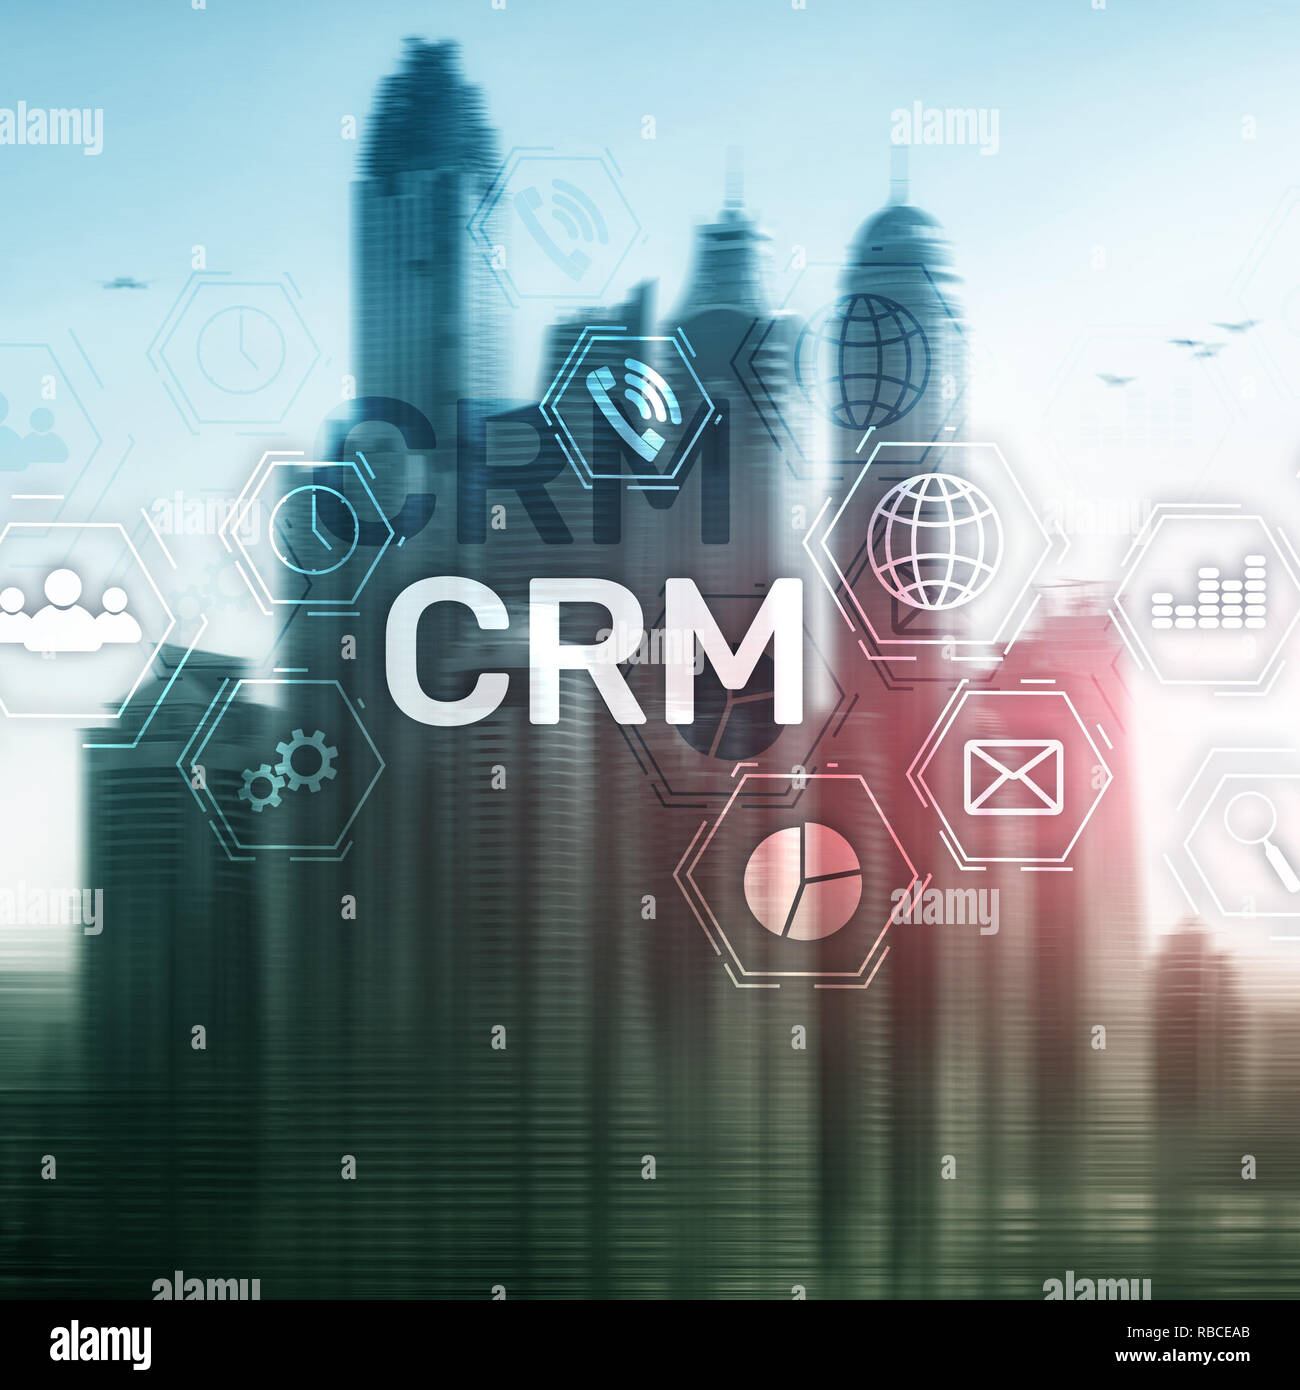 CRM, Customer relationship management system concept on abstract blurred background. - Stock Image